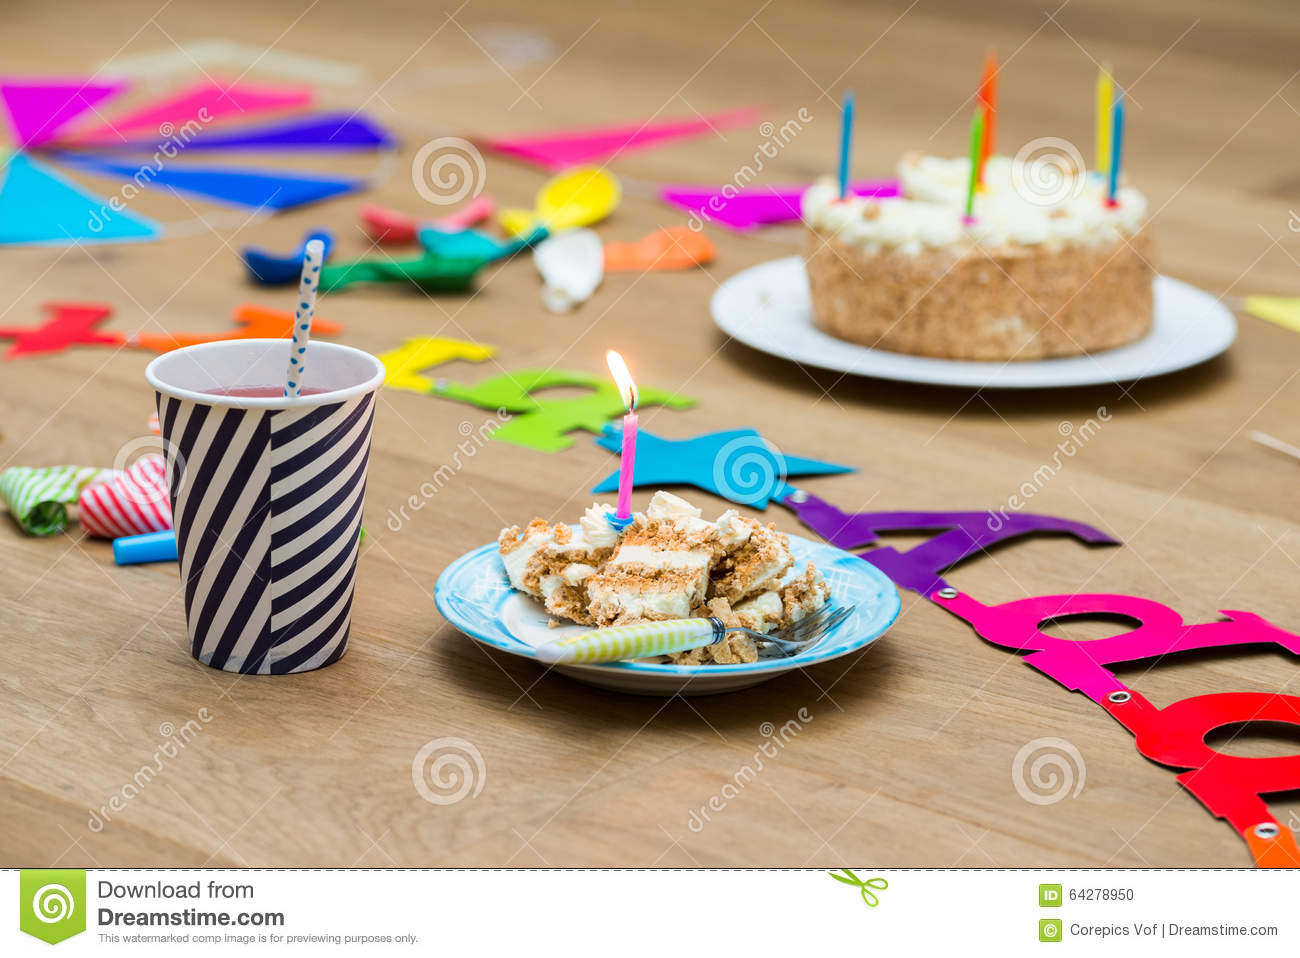 Closeup Of Lit Candles On Birthday Cake At Decorated Wooden Table